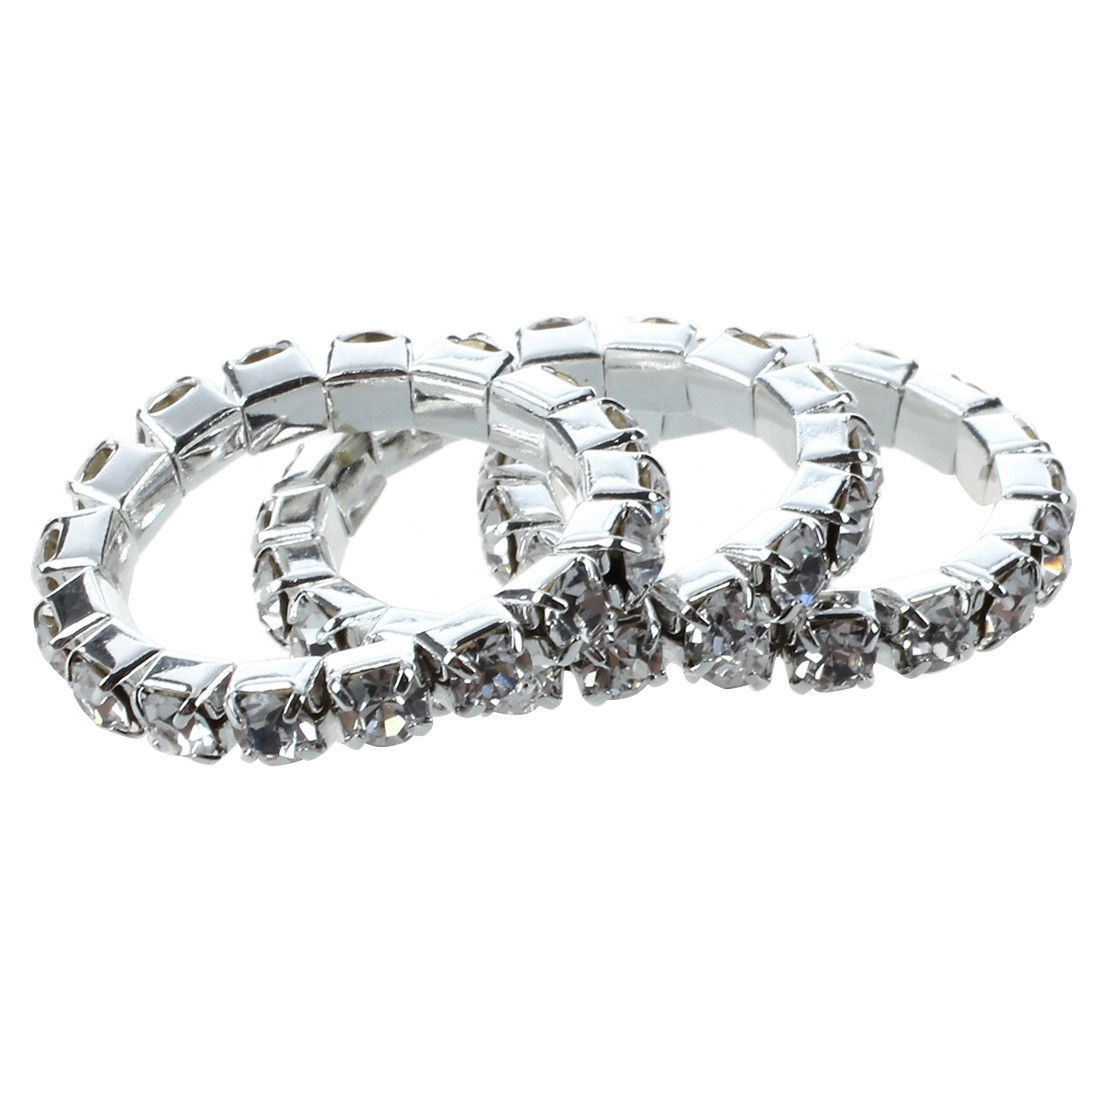 Single Row Crystal Clear Rhinestone Silver Stretch Toe Ring With Regard To Most Recent Elastic Toe Rings (Gallery 10 of 15)